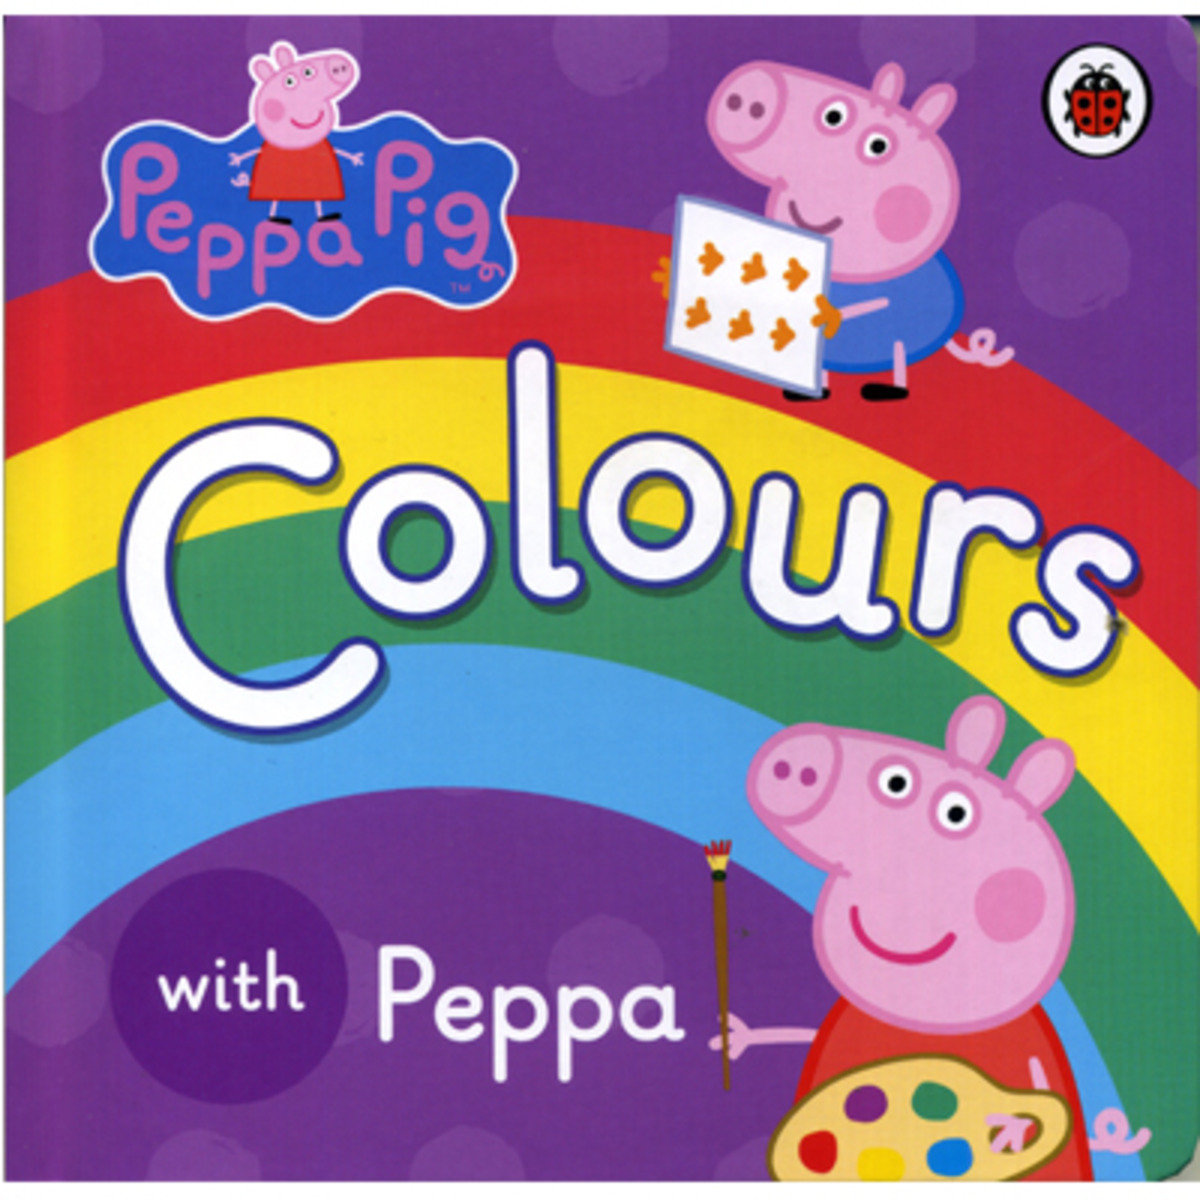 Peppa Pig: Colours 9780723297833